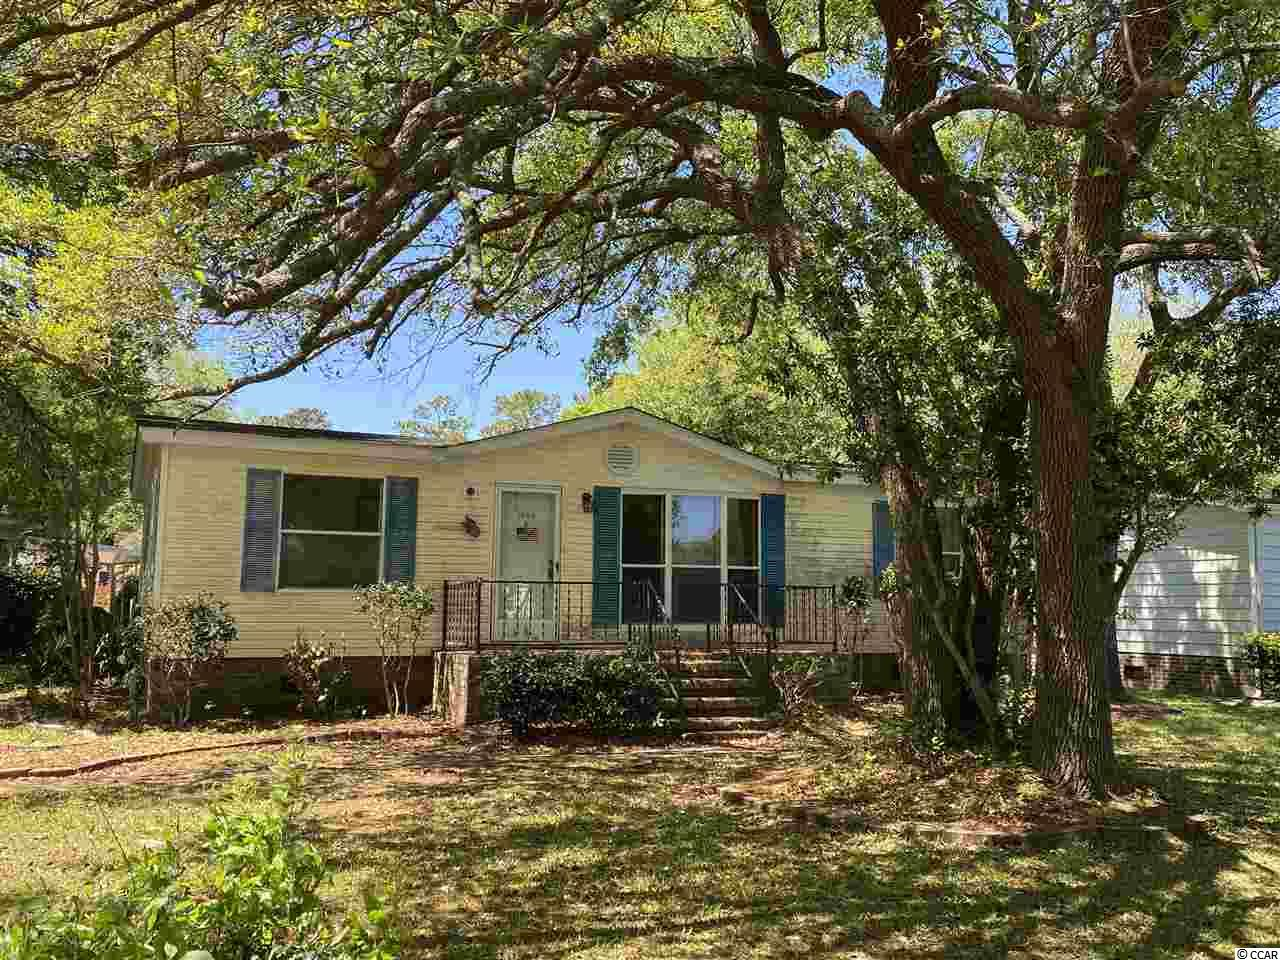 Perfect opportunity for homeowner or investor to purchase in the lovely Live Oak 55+ community. Low HOA fees and you own - not lease - the land! This manufactured home features a spacious living room with vaulted ceilings, a galley kitchen with dinette area, large master bedroom with attached master bathroom suite and walk in closet, two additional bedrooms, a hall bath, and a huge Carolina room off the back of the house. The back yard faces the common area and the community pool and clubhouse. Close to marshwalk, beach, and restaurants and shopping. Property will be sold via online auction - see agent notes.